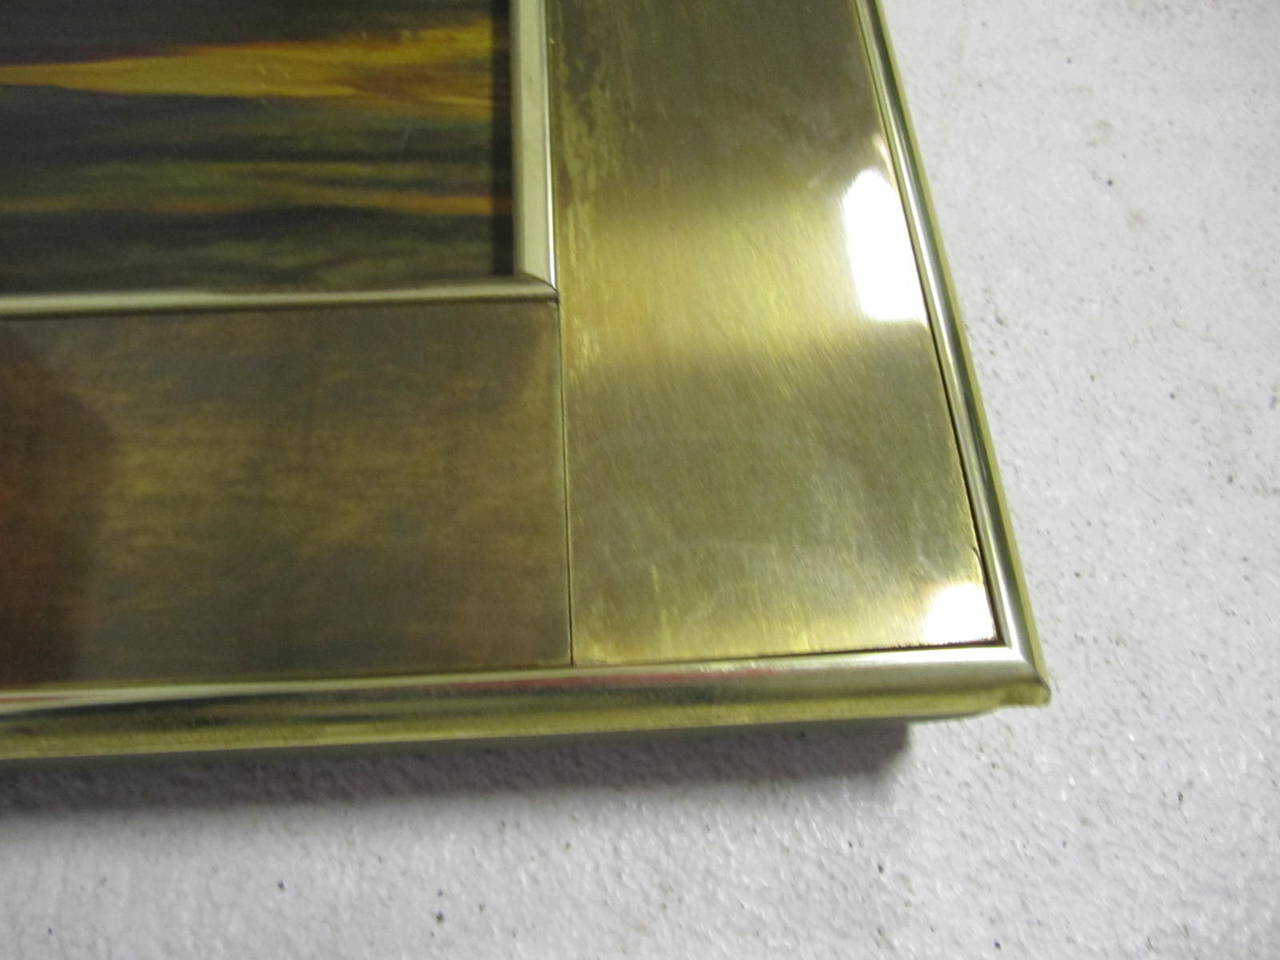 Acid Etched Bernhard Rohne for Mastercraft Mirror Mid-Century Modern In Good Condition For Sale In Pemberton, NJ